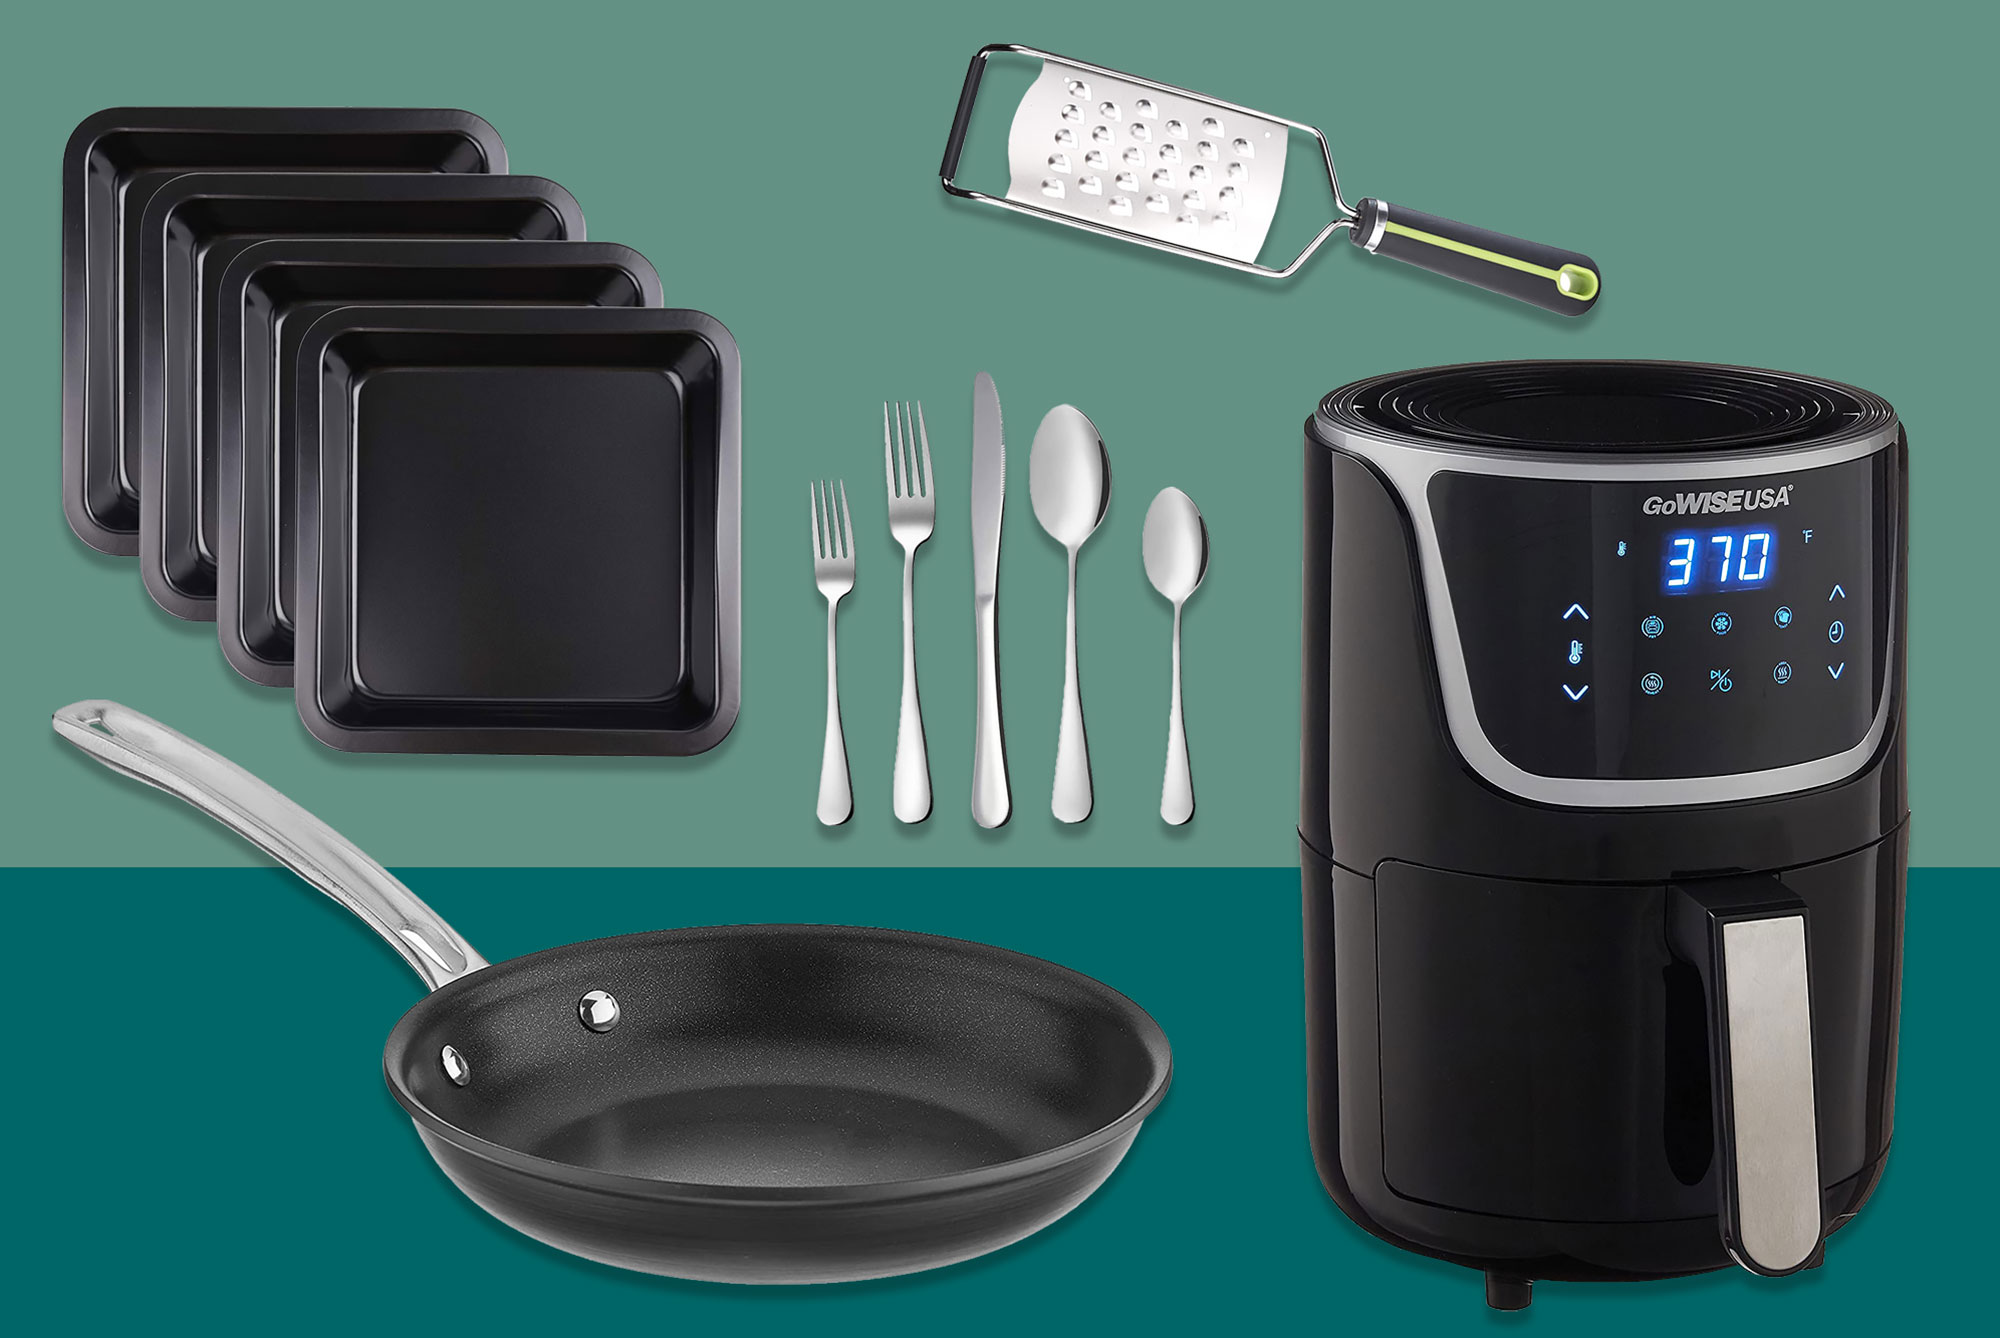 Various kitchen tools and appliances available from Amazon